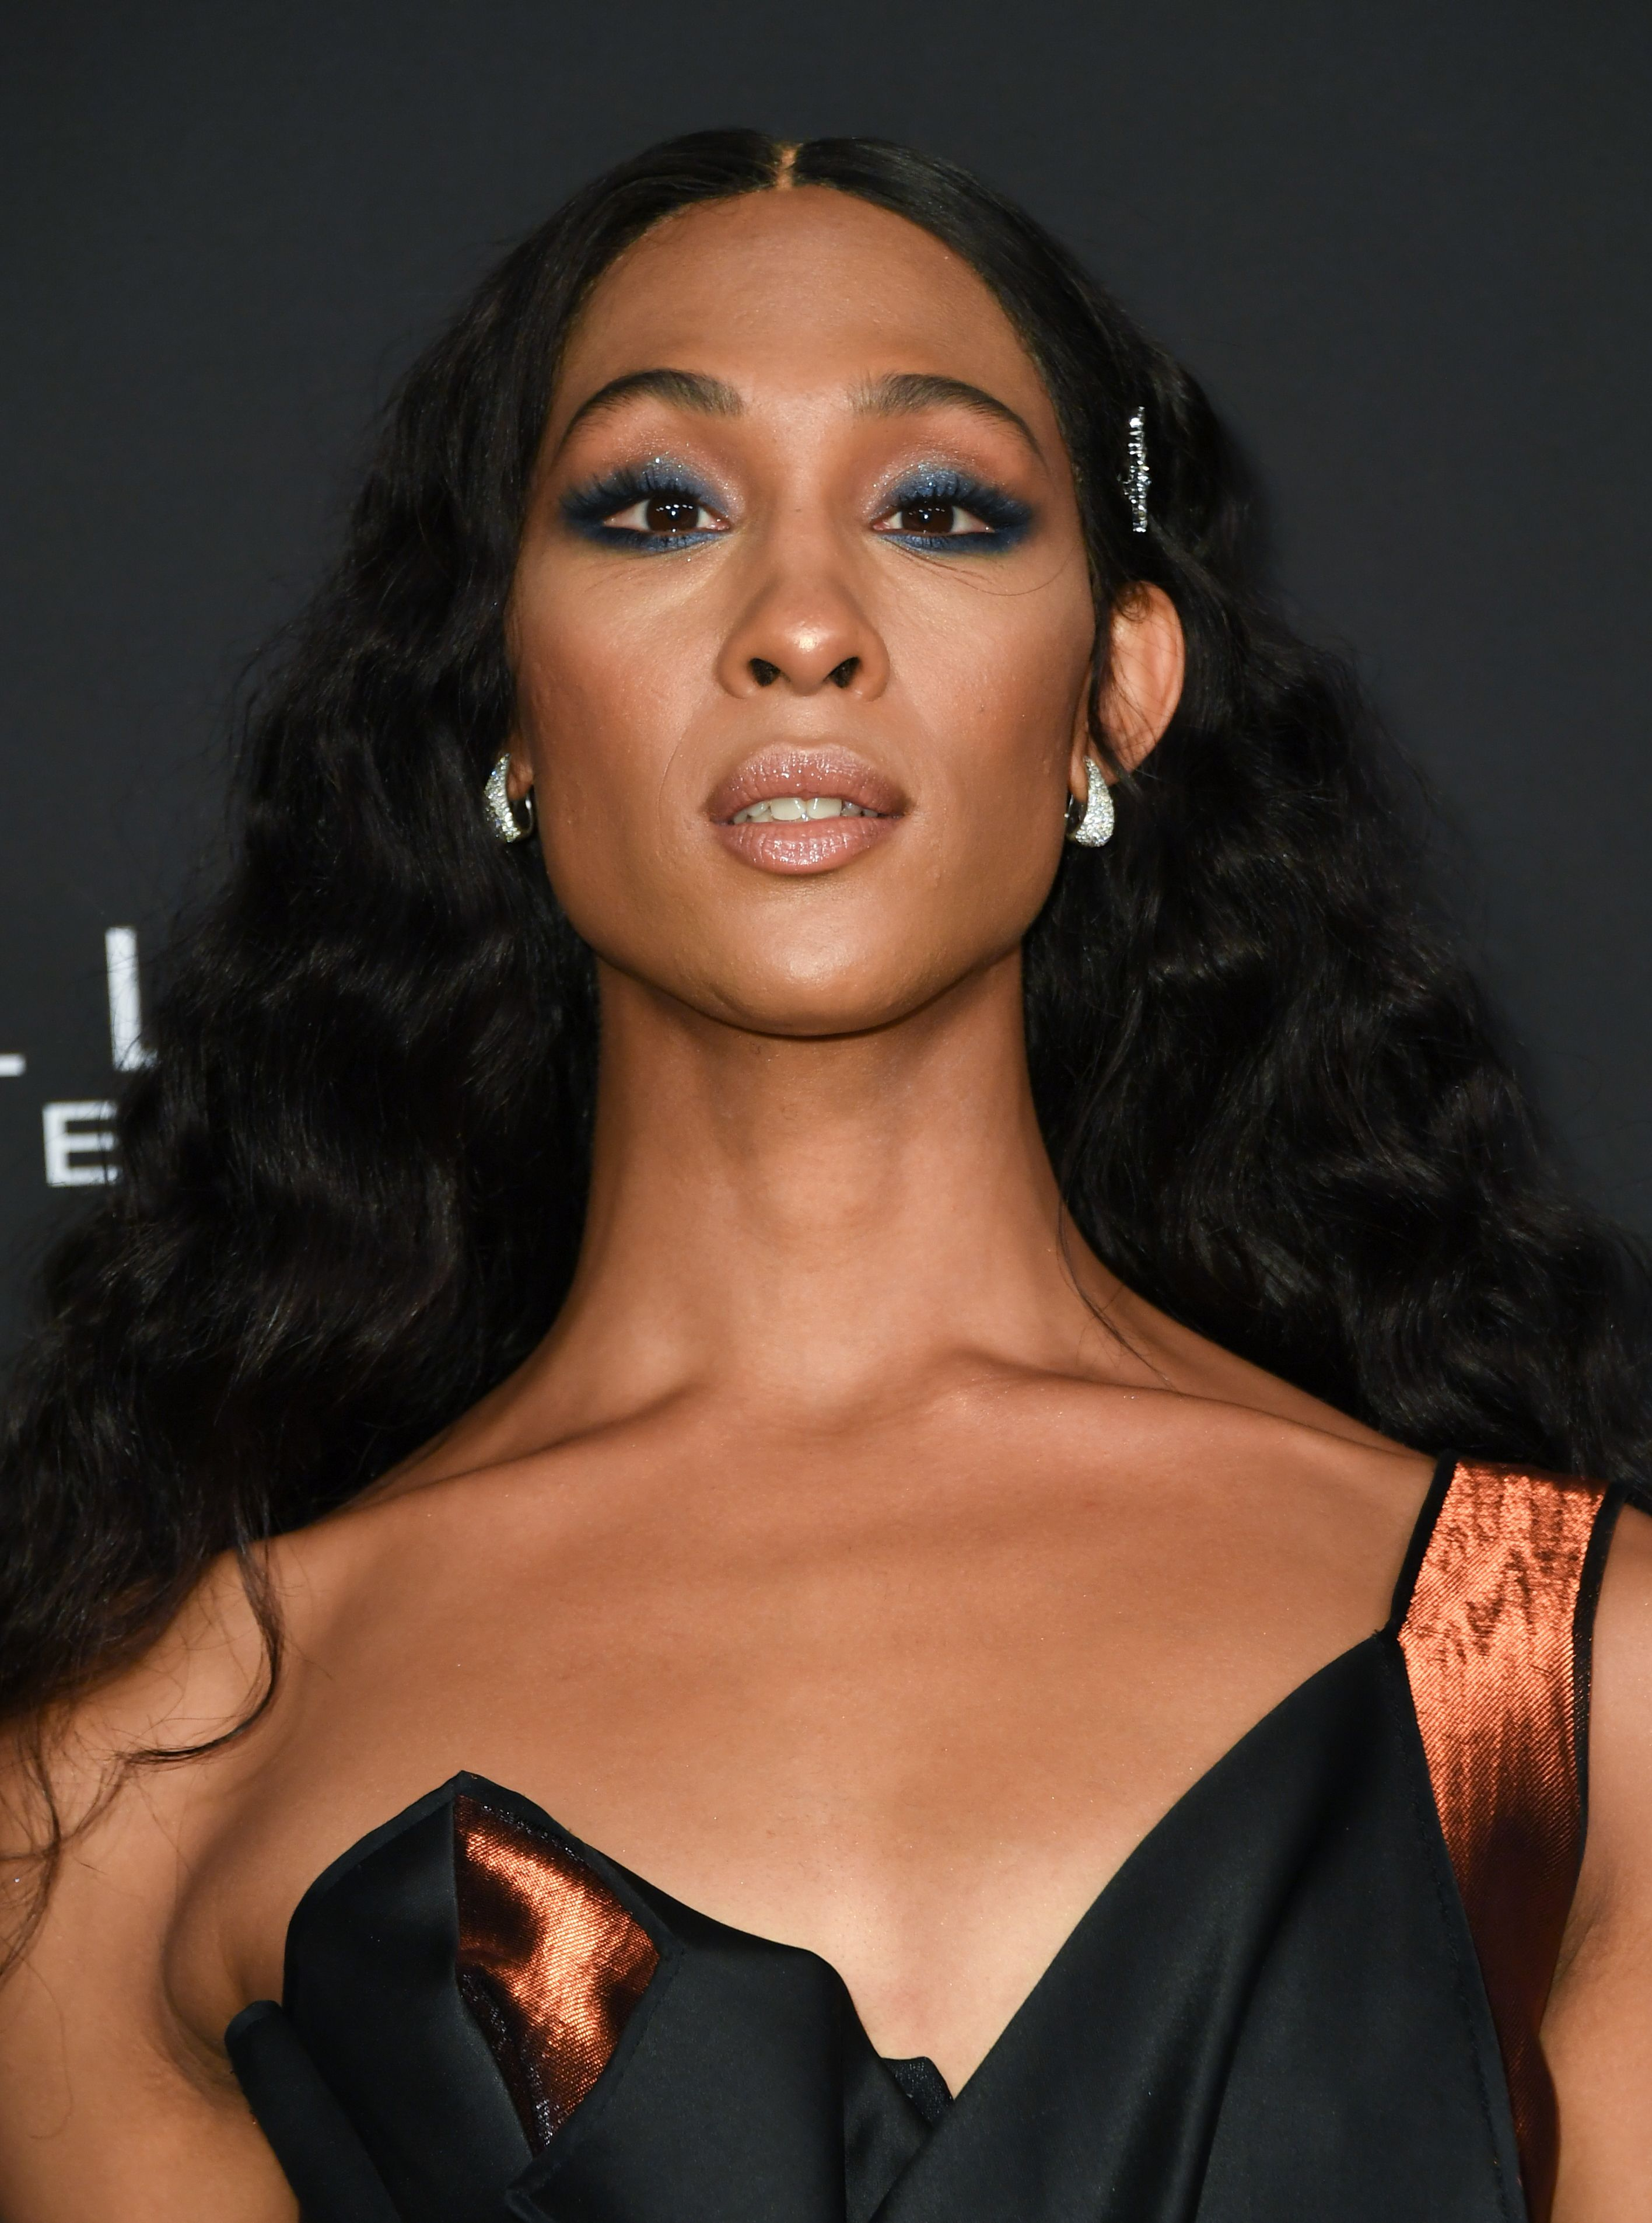 7 Things You Didn't Know About Pose Star Mj Rodriguez - Fashion Platforms